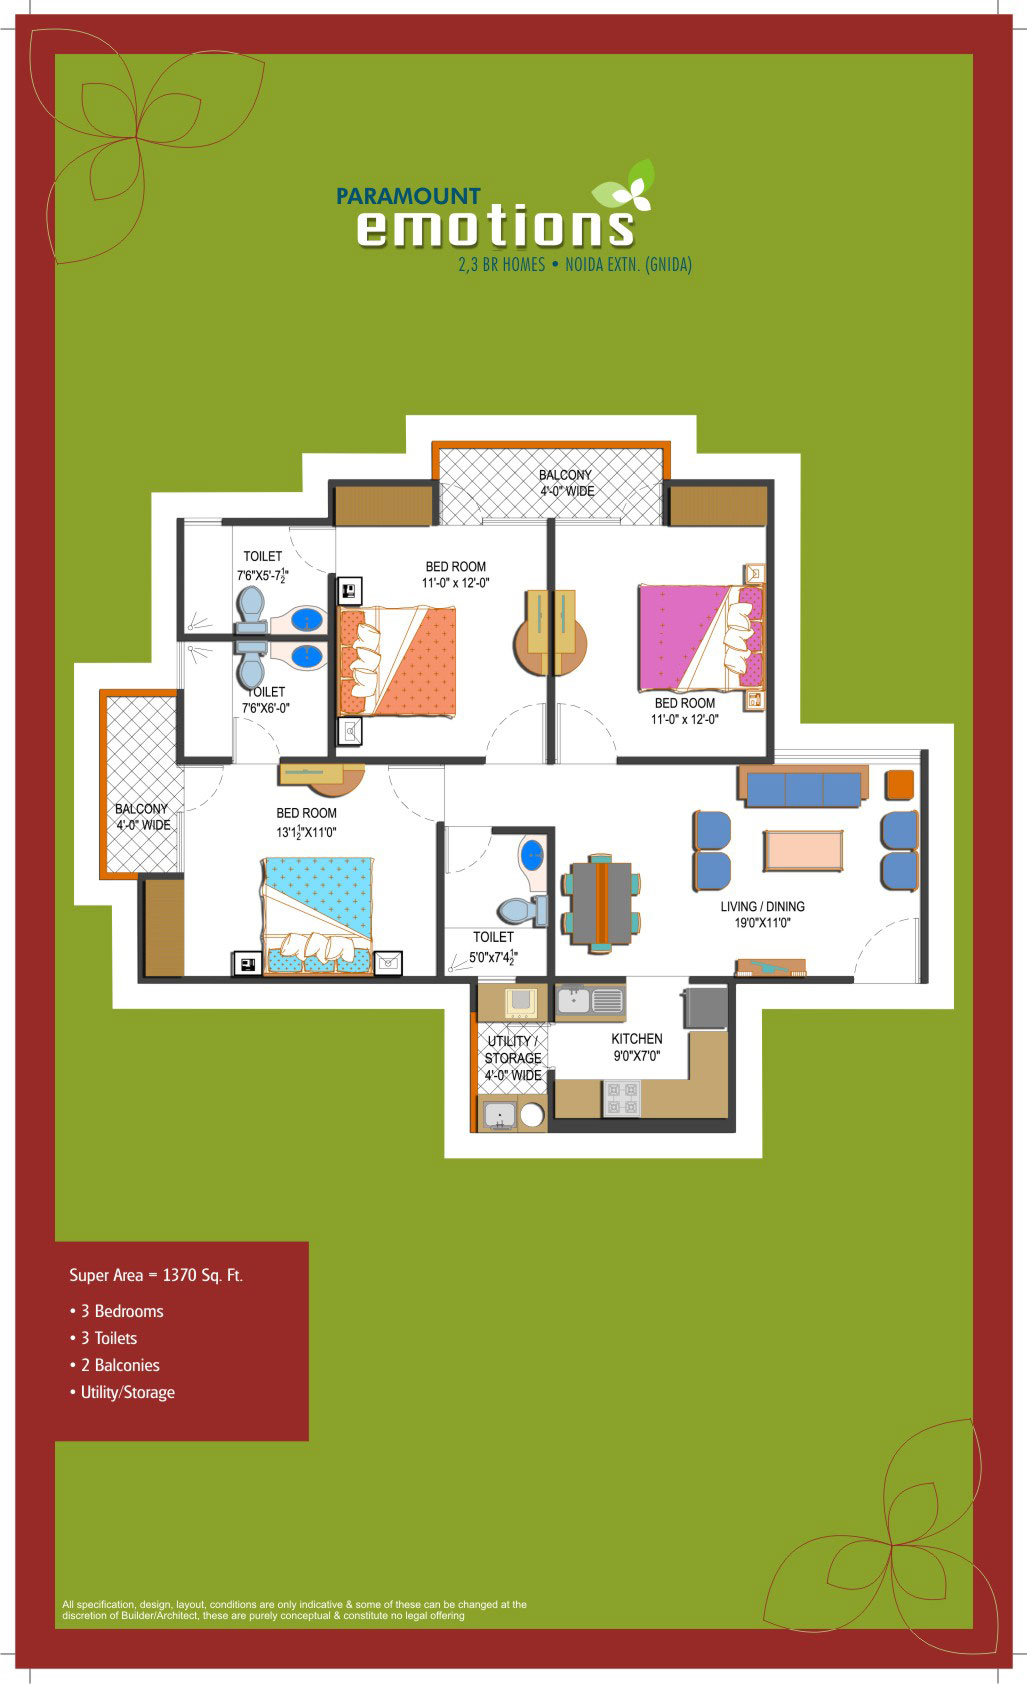 Paramount Emotions Floor Plan Paramount Emotions Noida Extension